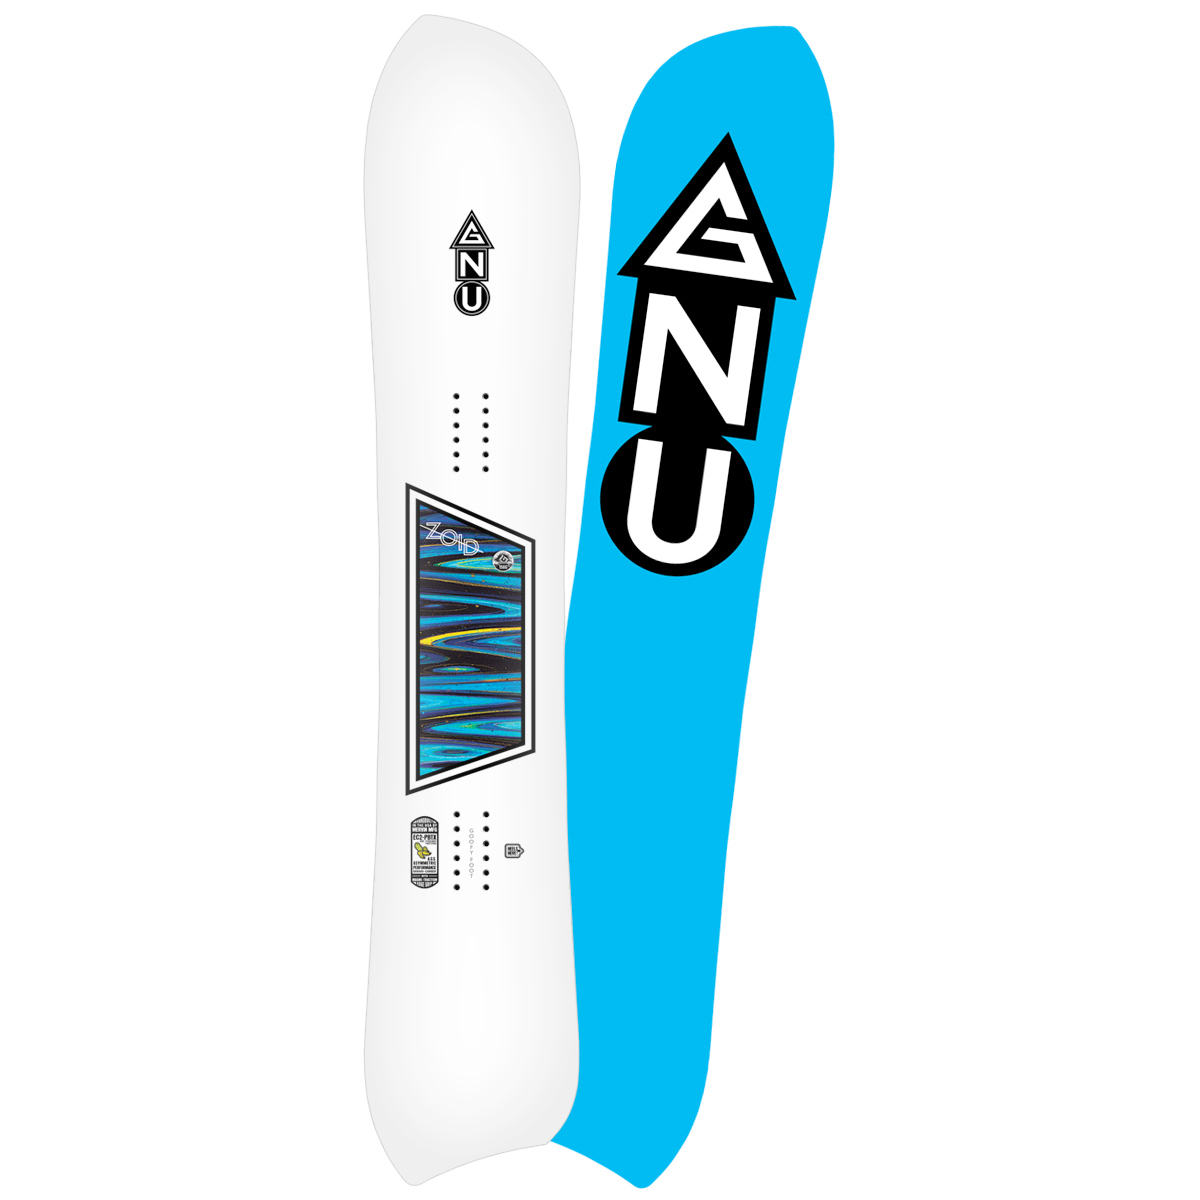 Gnu Snowboard Zoid 2016 158cm Goofy Specific Review Owner Reviews Lowest Prices